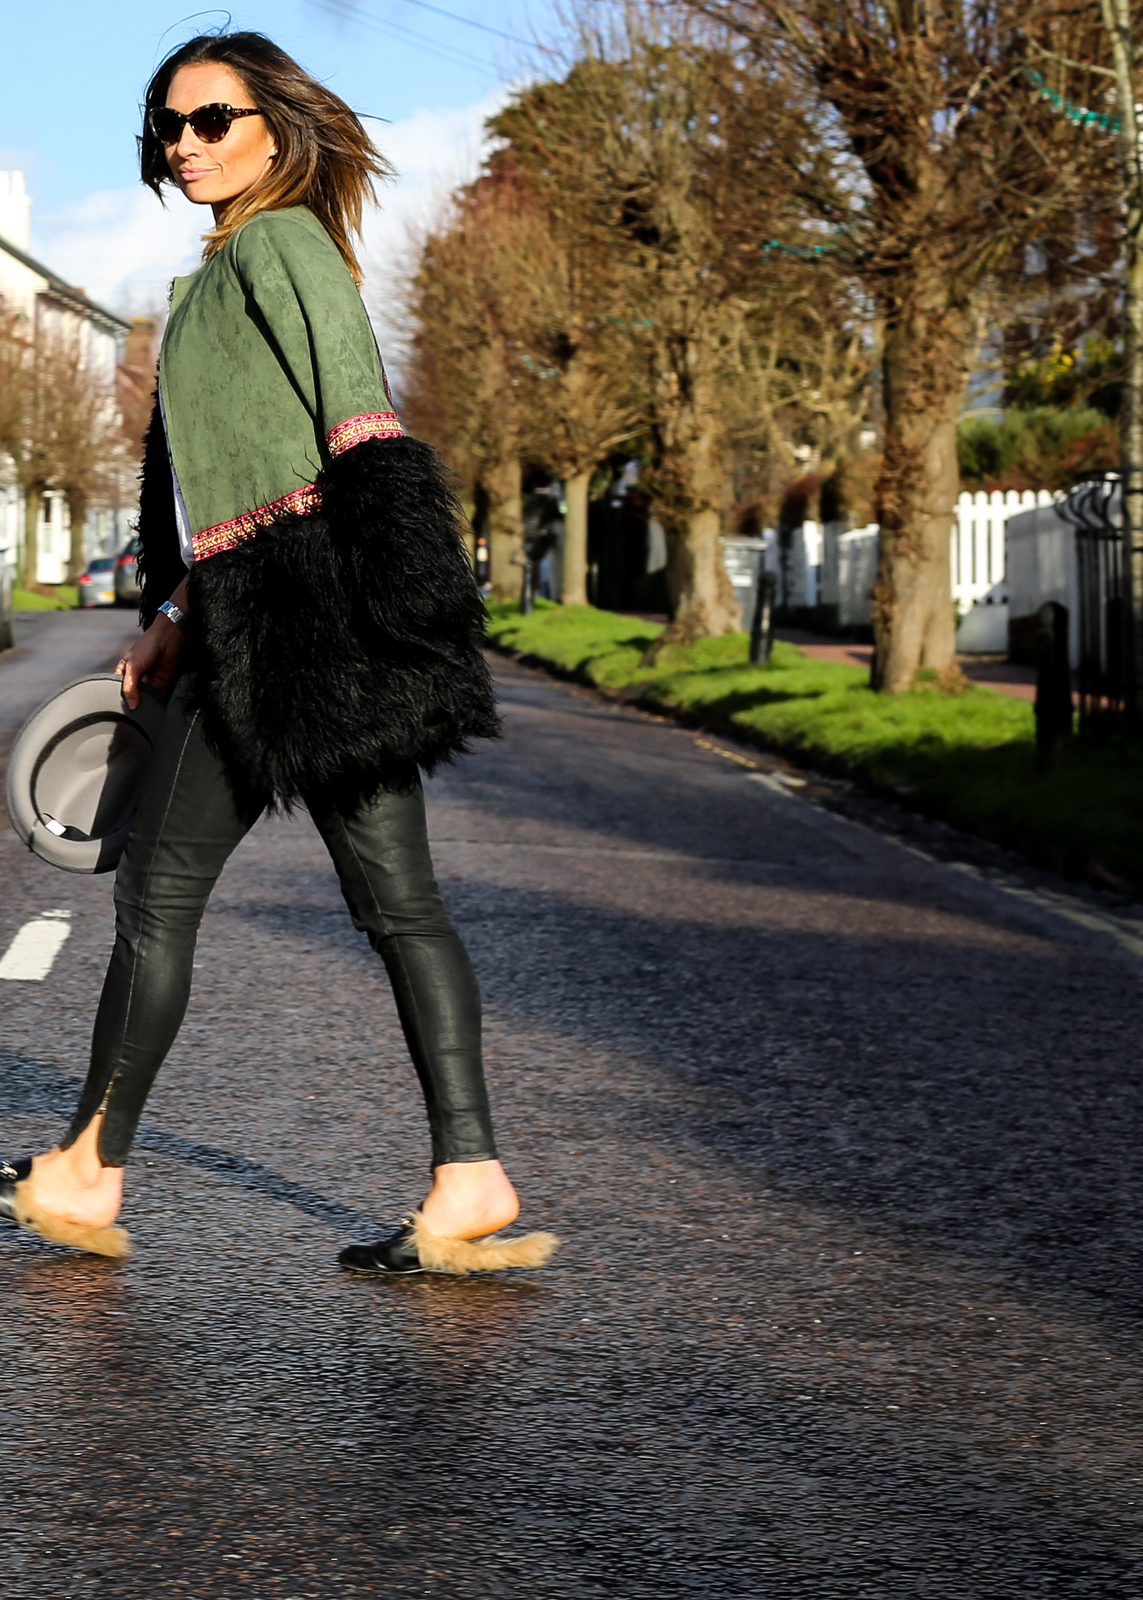 Claire Elizabeth walking across the road wearing leather trousers and green coat with black faux fur trim and Taylor Morris sunglasses